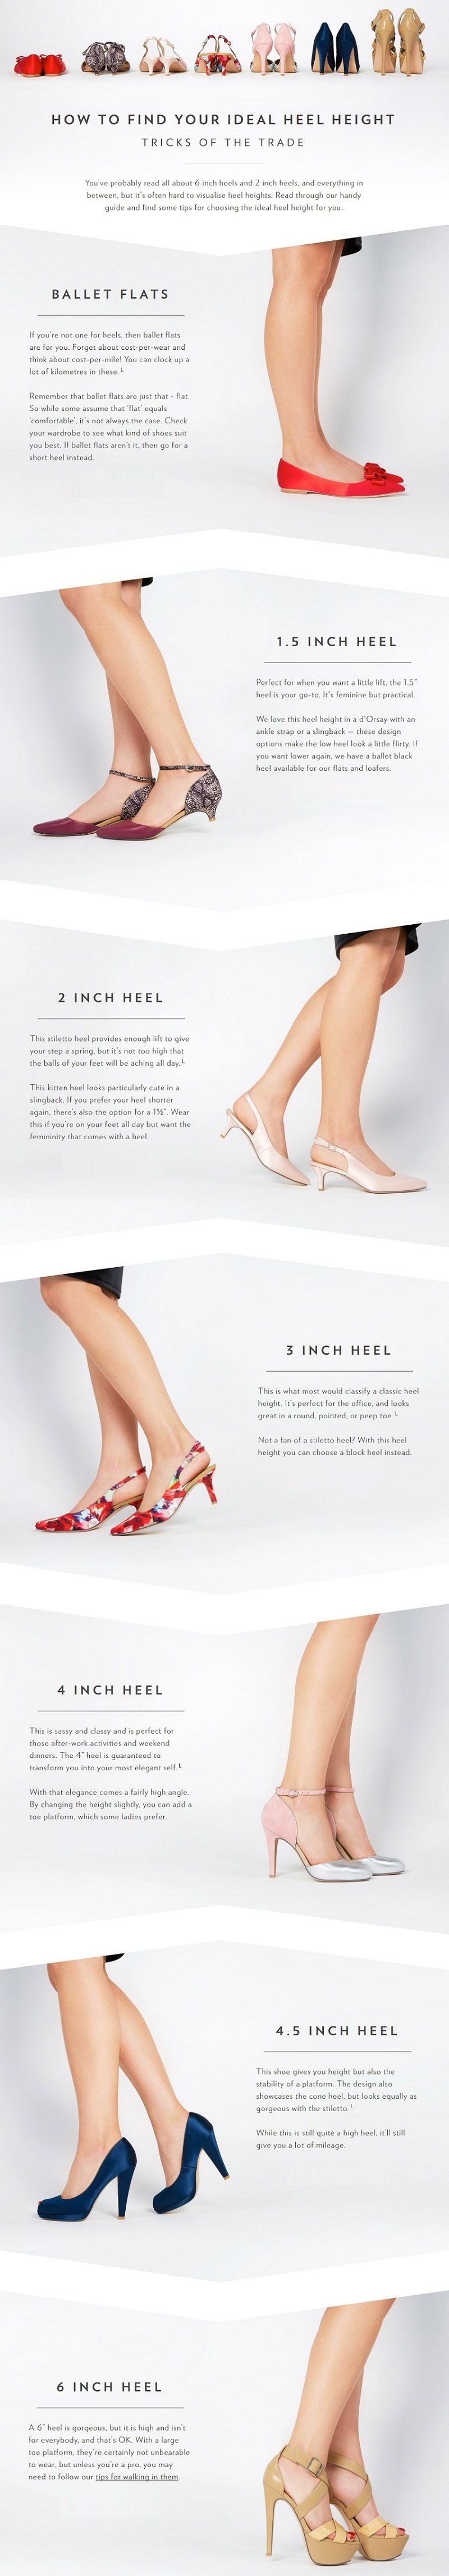 how to make walking in heels more comfortable, how to get used to high heels